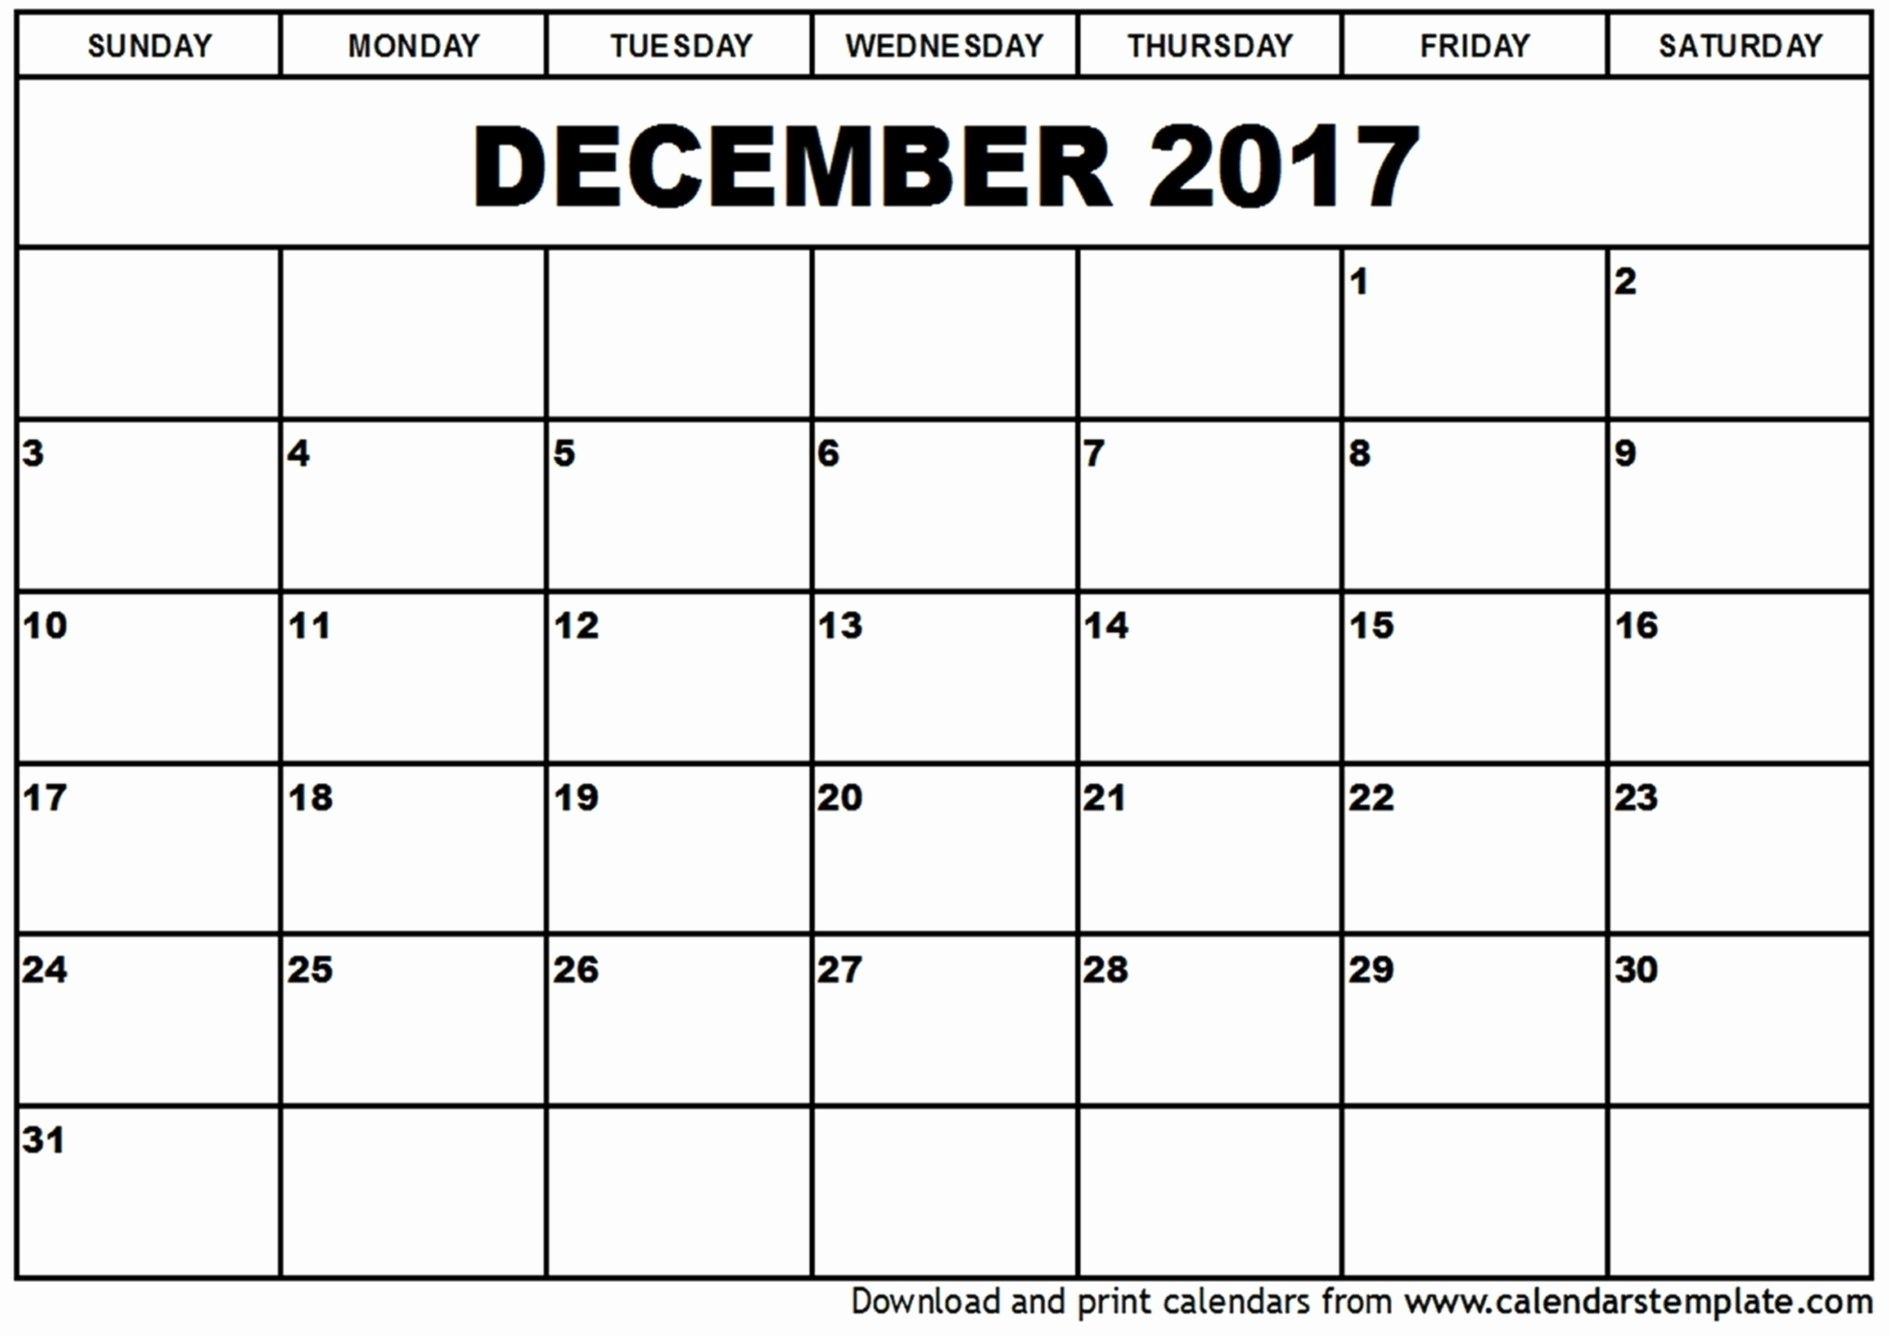 Printable Calendar I Can Type On In 2020 | Free Calendar for Free Printable 11X17 Monthly Calendar